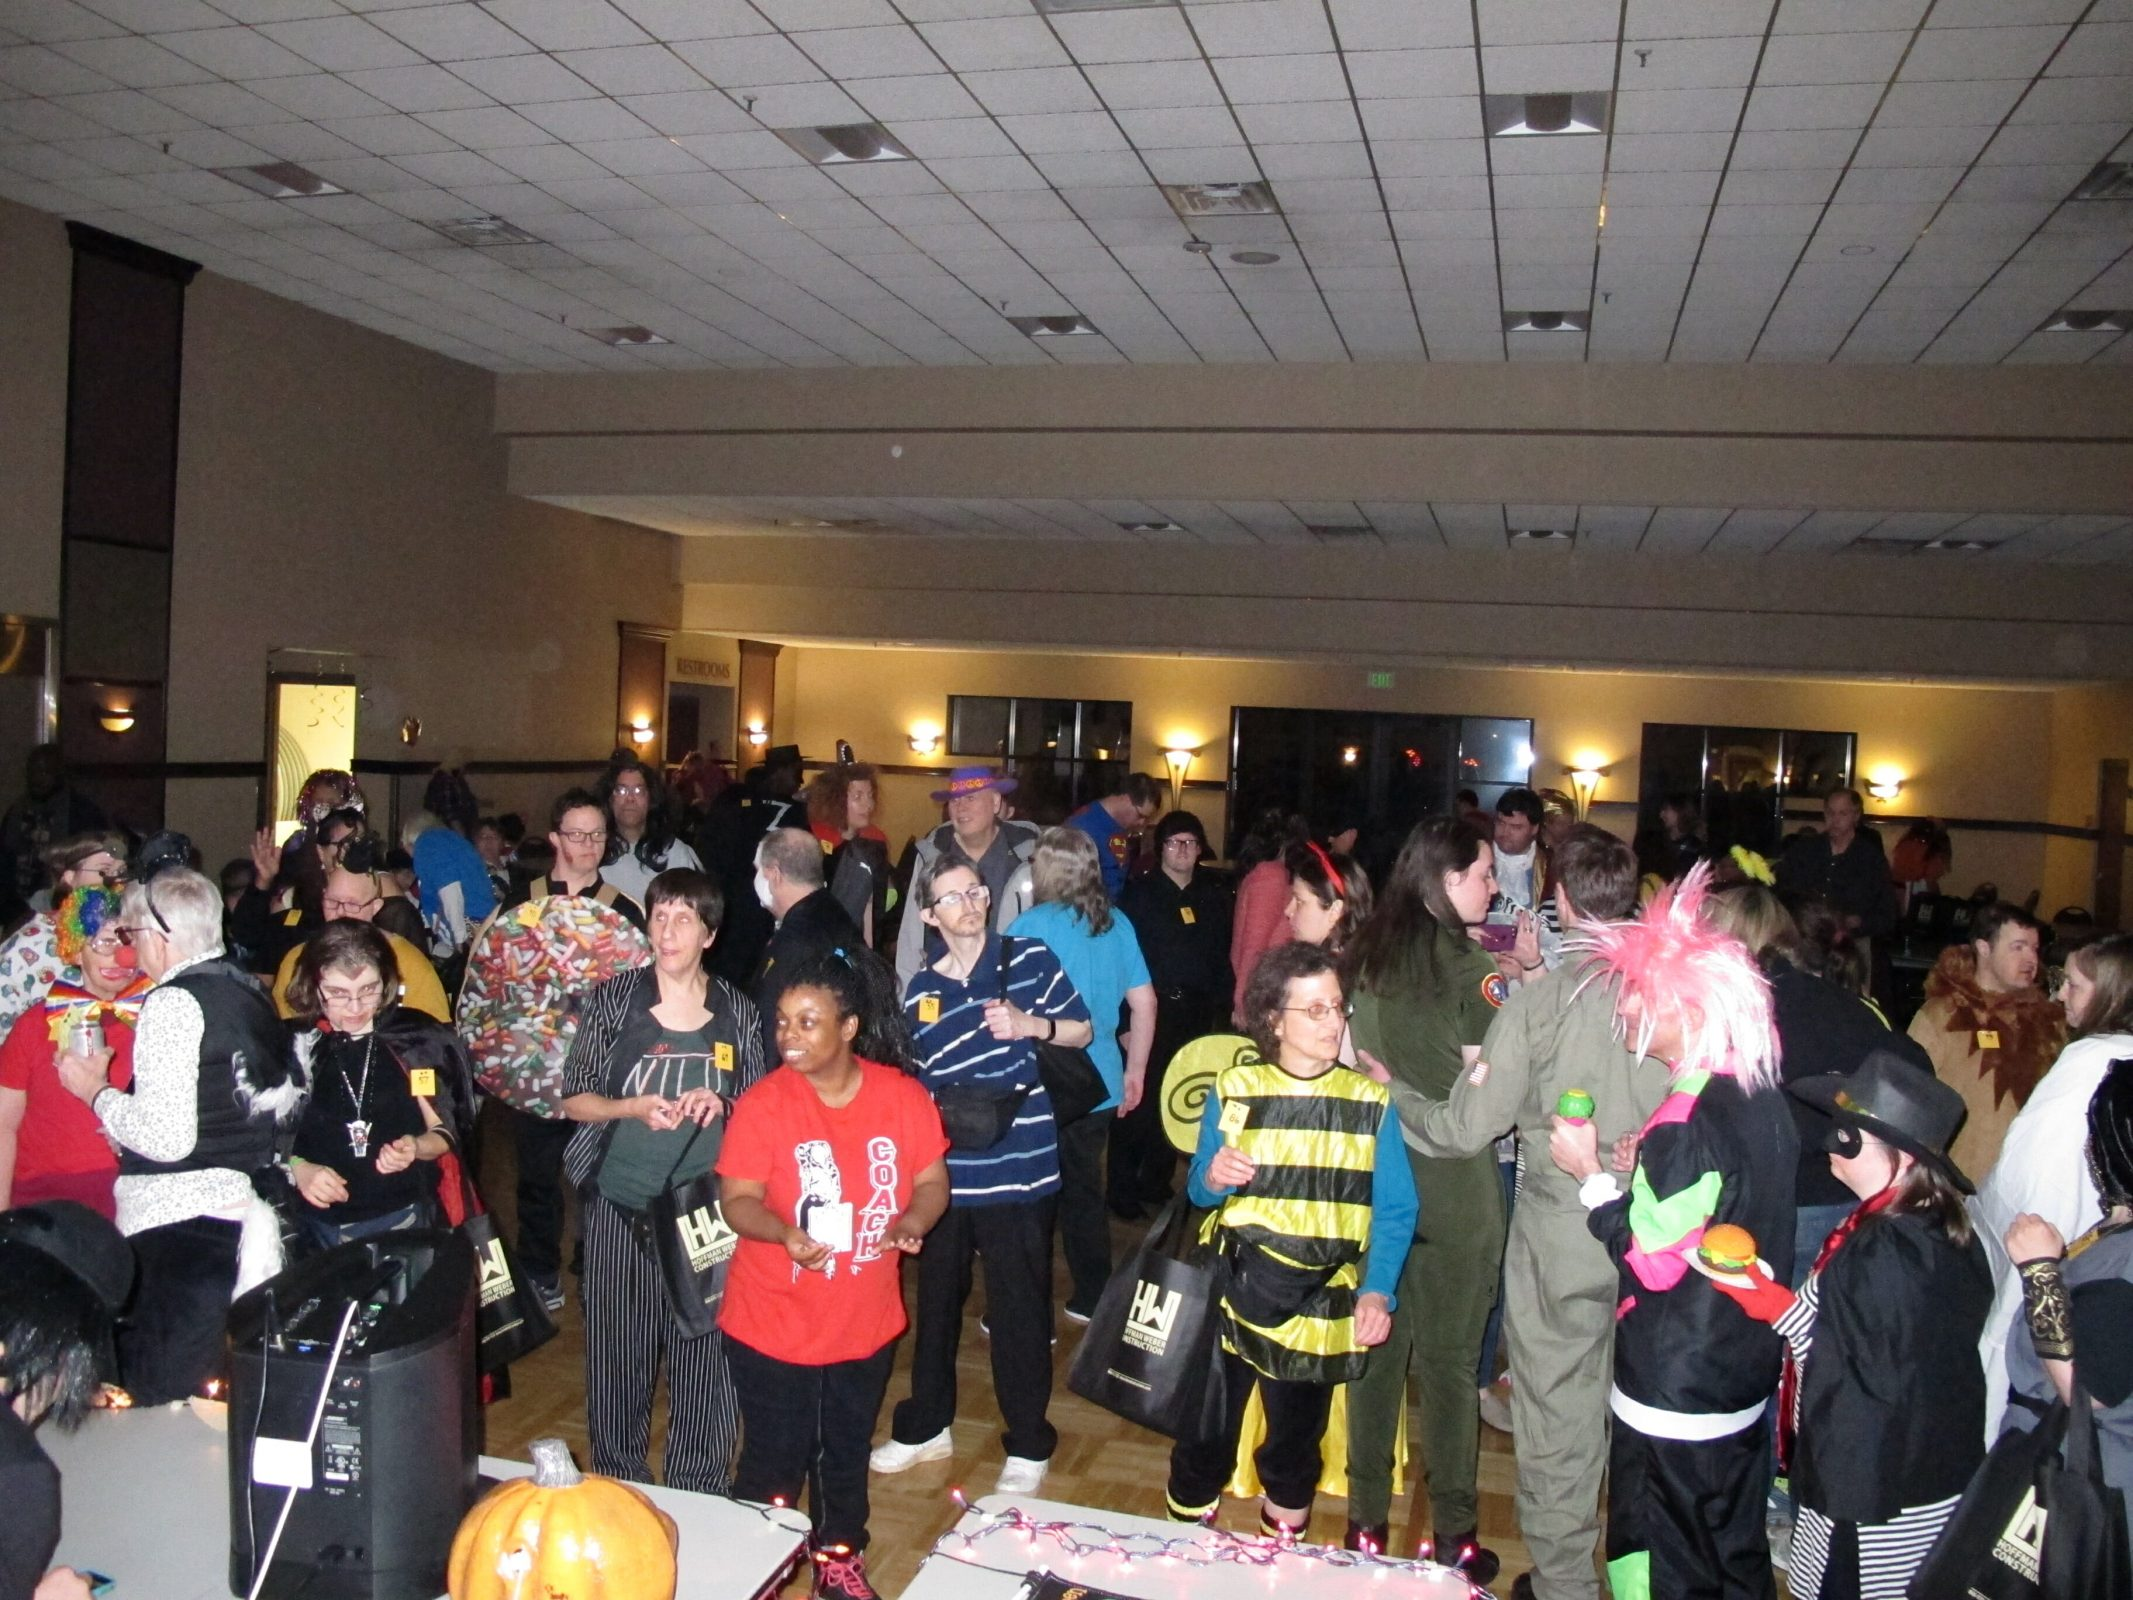 A large diverse group of people in Halloween costumes dancing in dim room